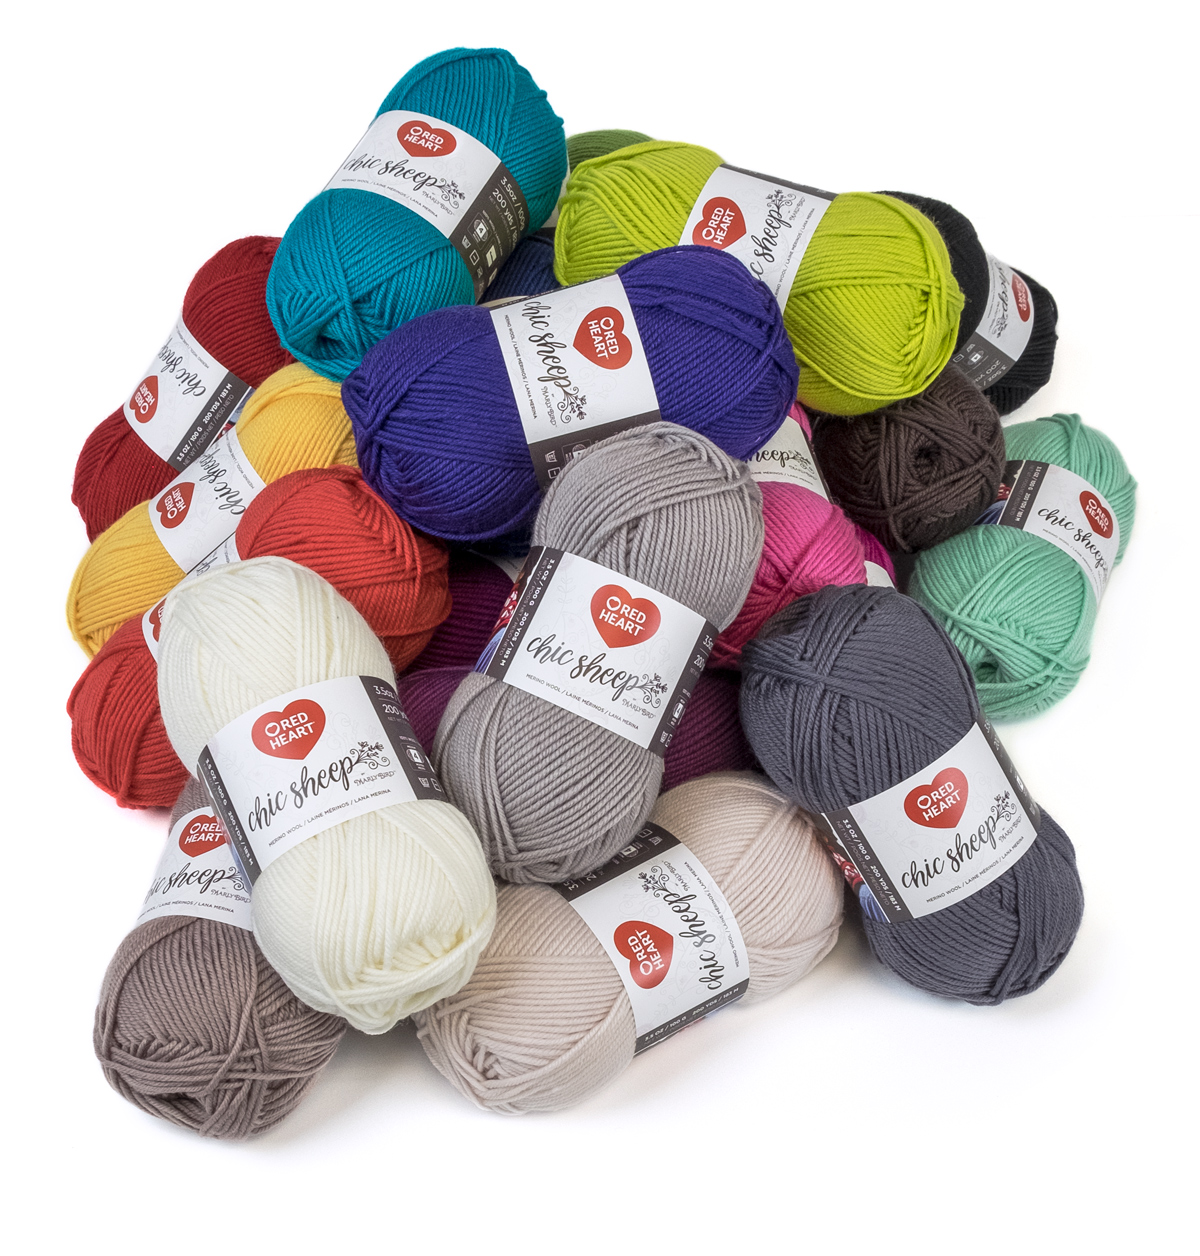 Red Heart Chic Sheep Yarn-Linen 3 Pack